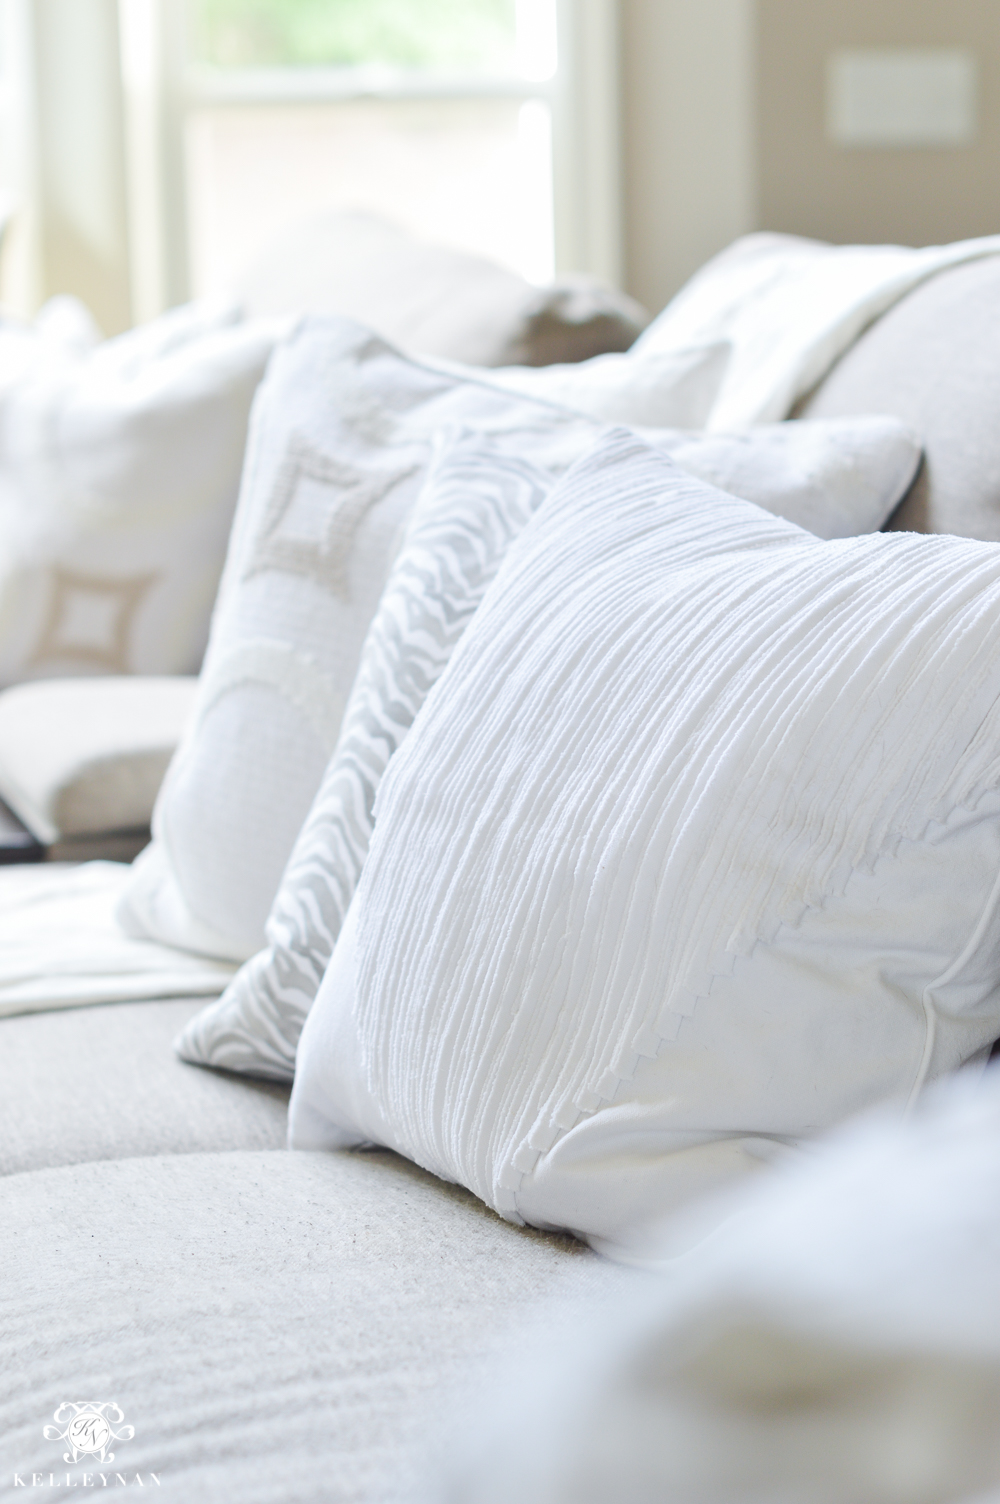 Shades of Summer Home Tour with Neutrals and Naturals- white summer pillows on gray sofa